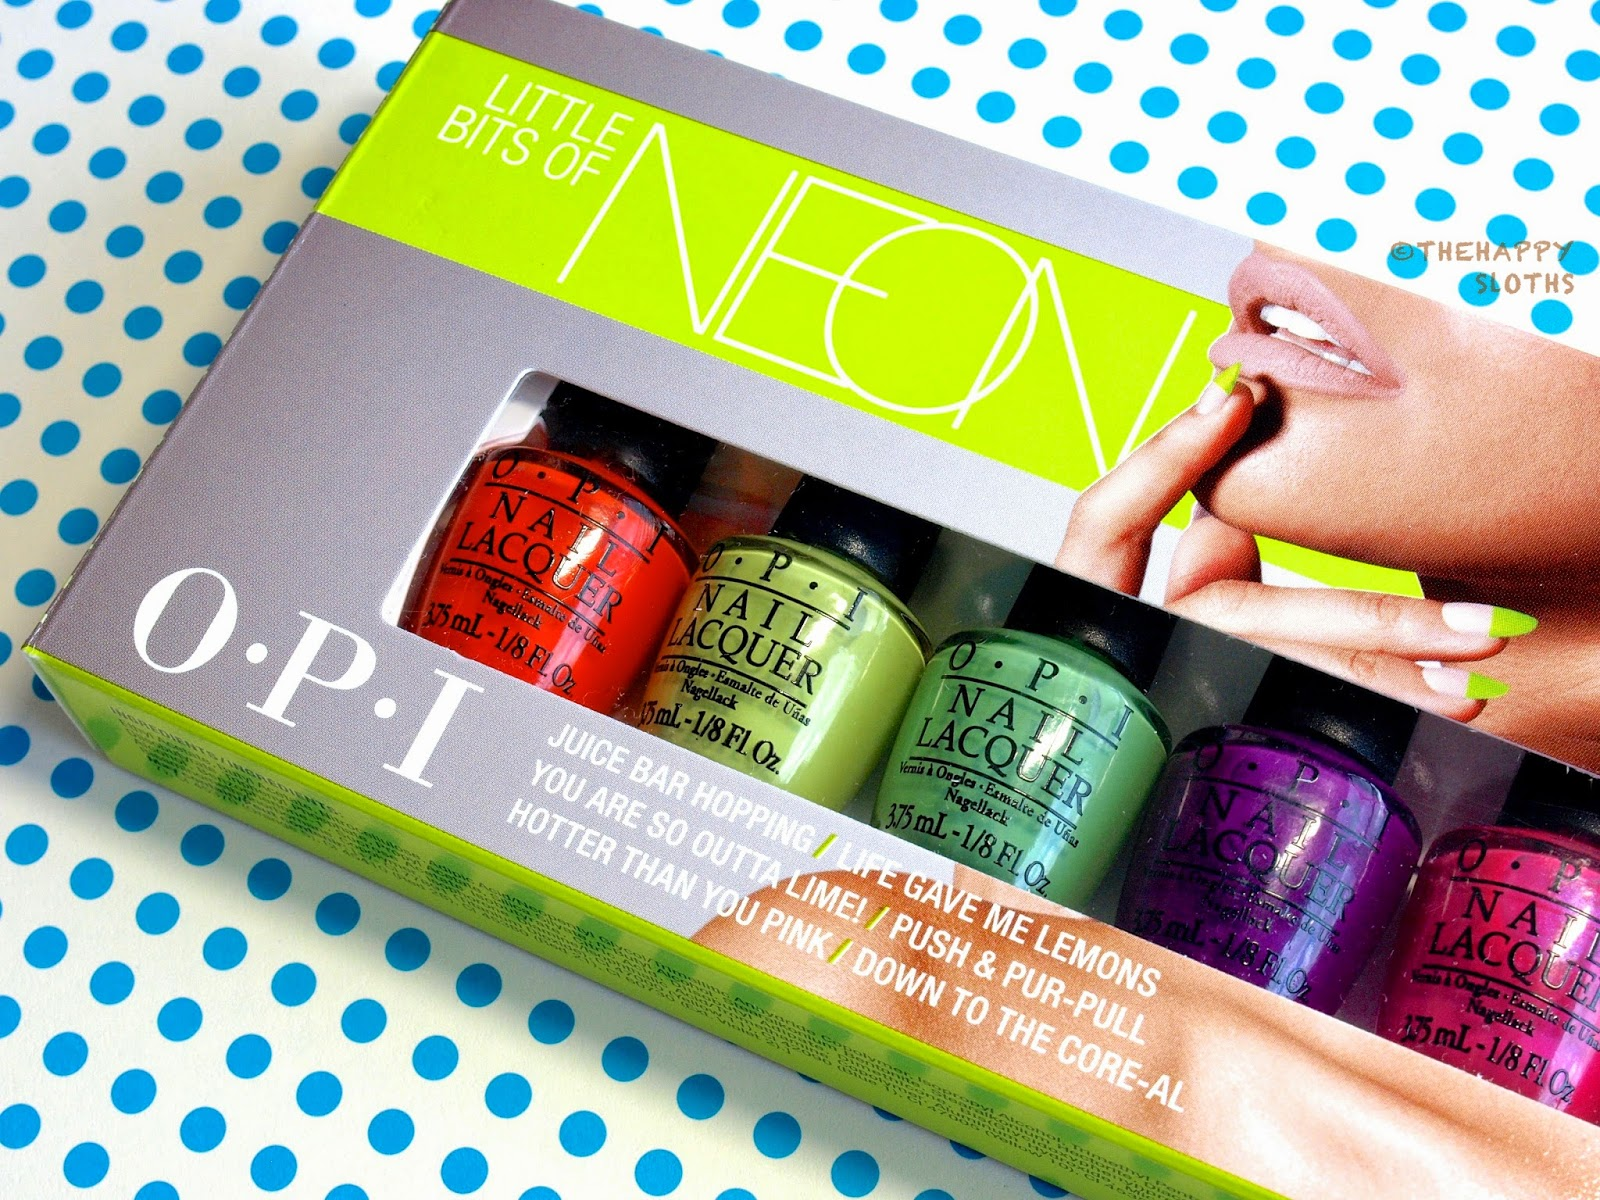 For The Upcoming Summer Months OPI Releases Six New Neon Nail Lacquers And First Time Polishes Are Not Only Available In Adorable Mini Bottles